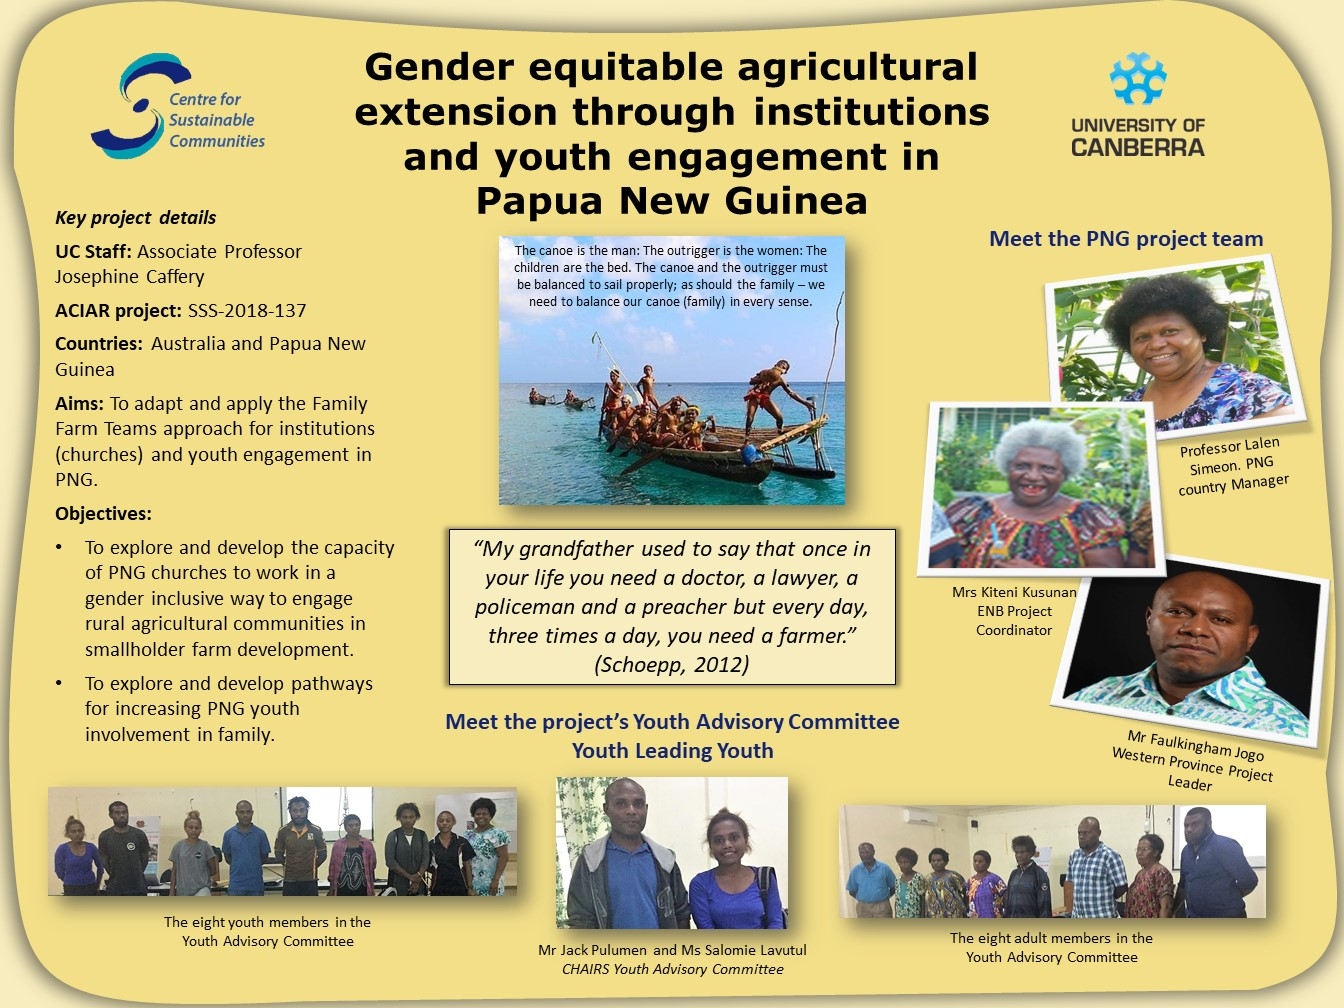 Gender equitable agriculture in PNG poster